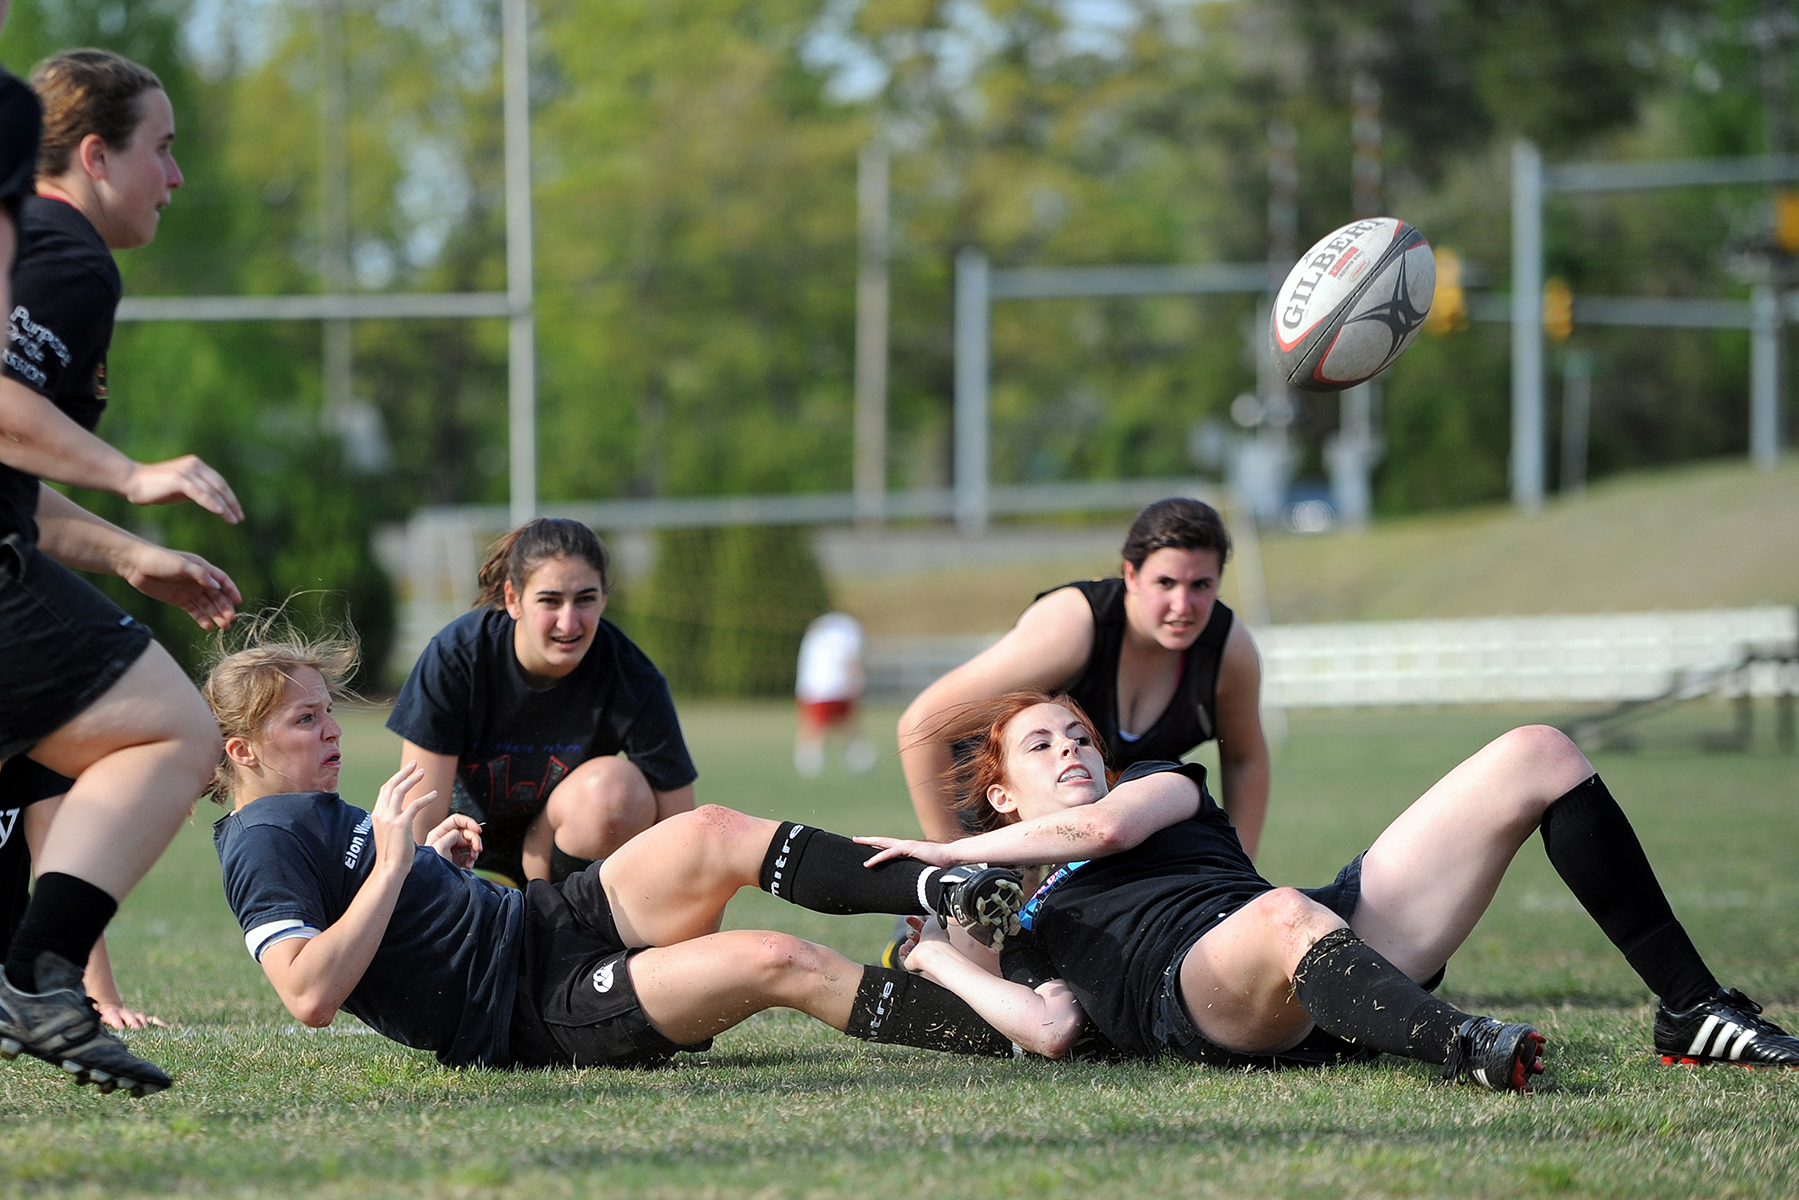 The Elon Women's Club Rugby team practices on south campus.